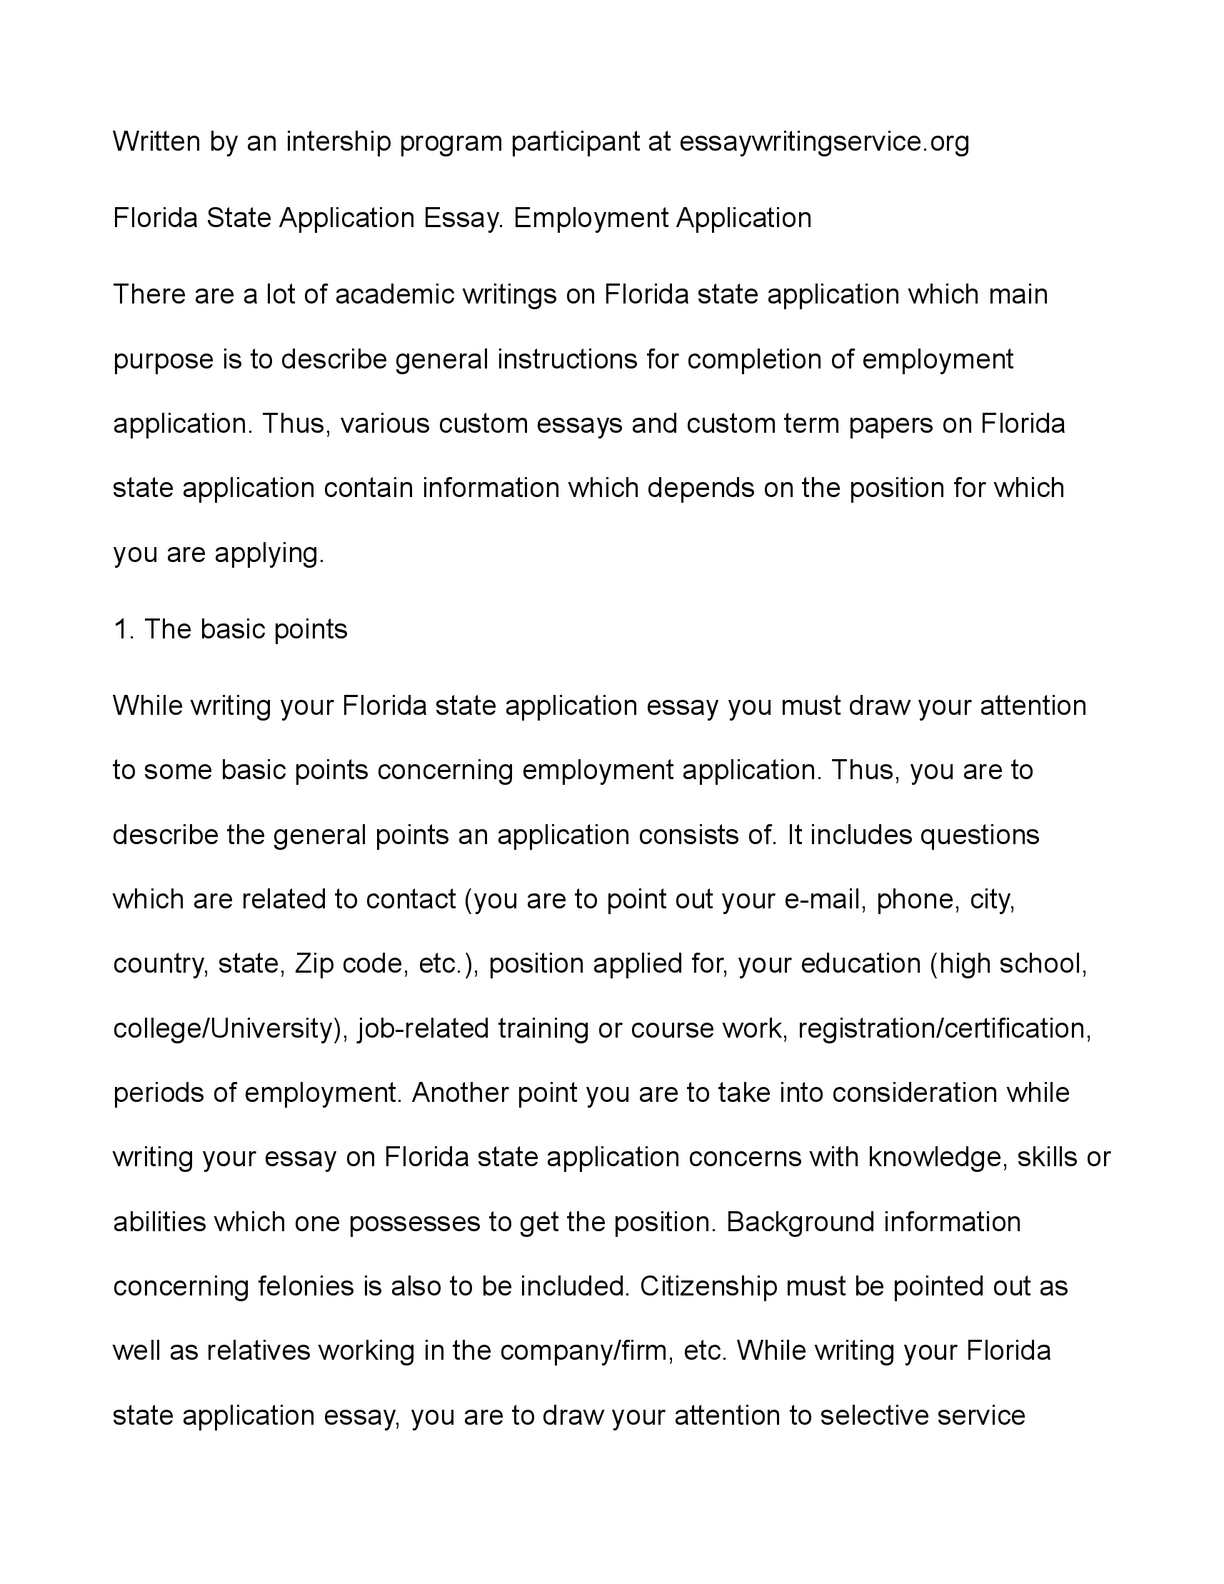 calaméo florida state application essay employment application